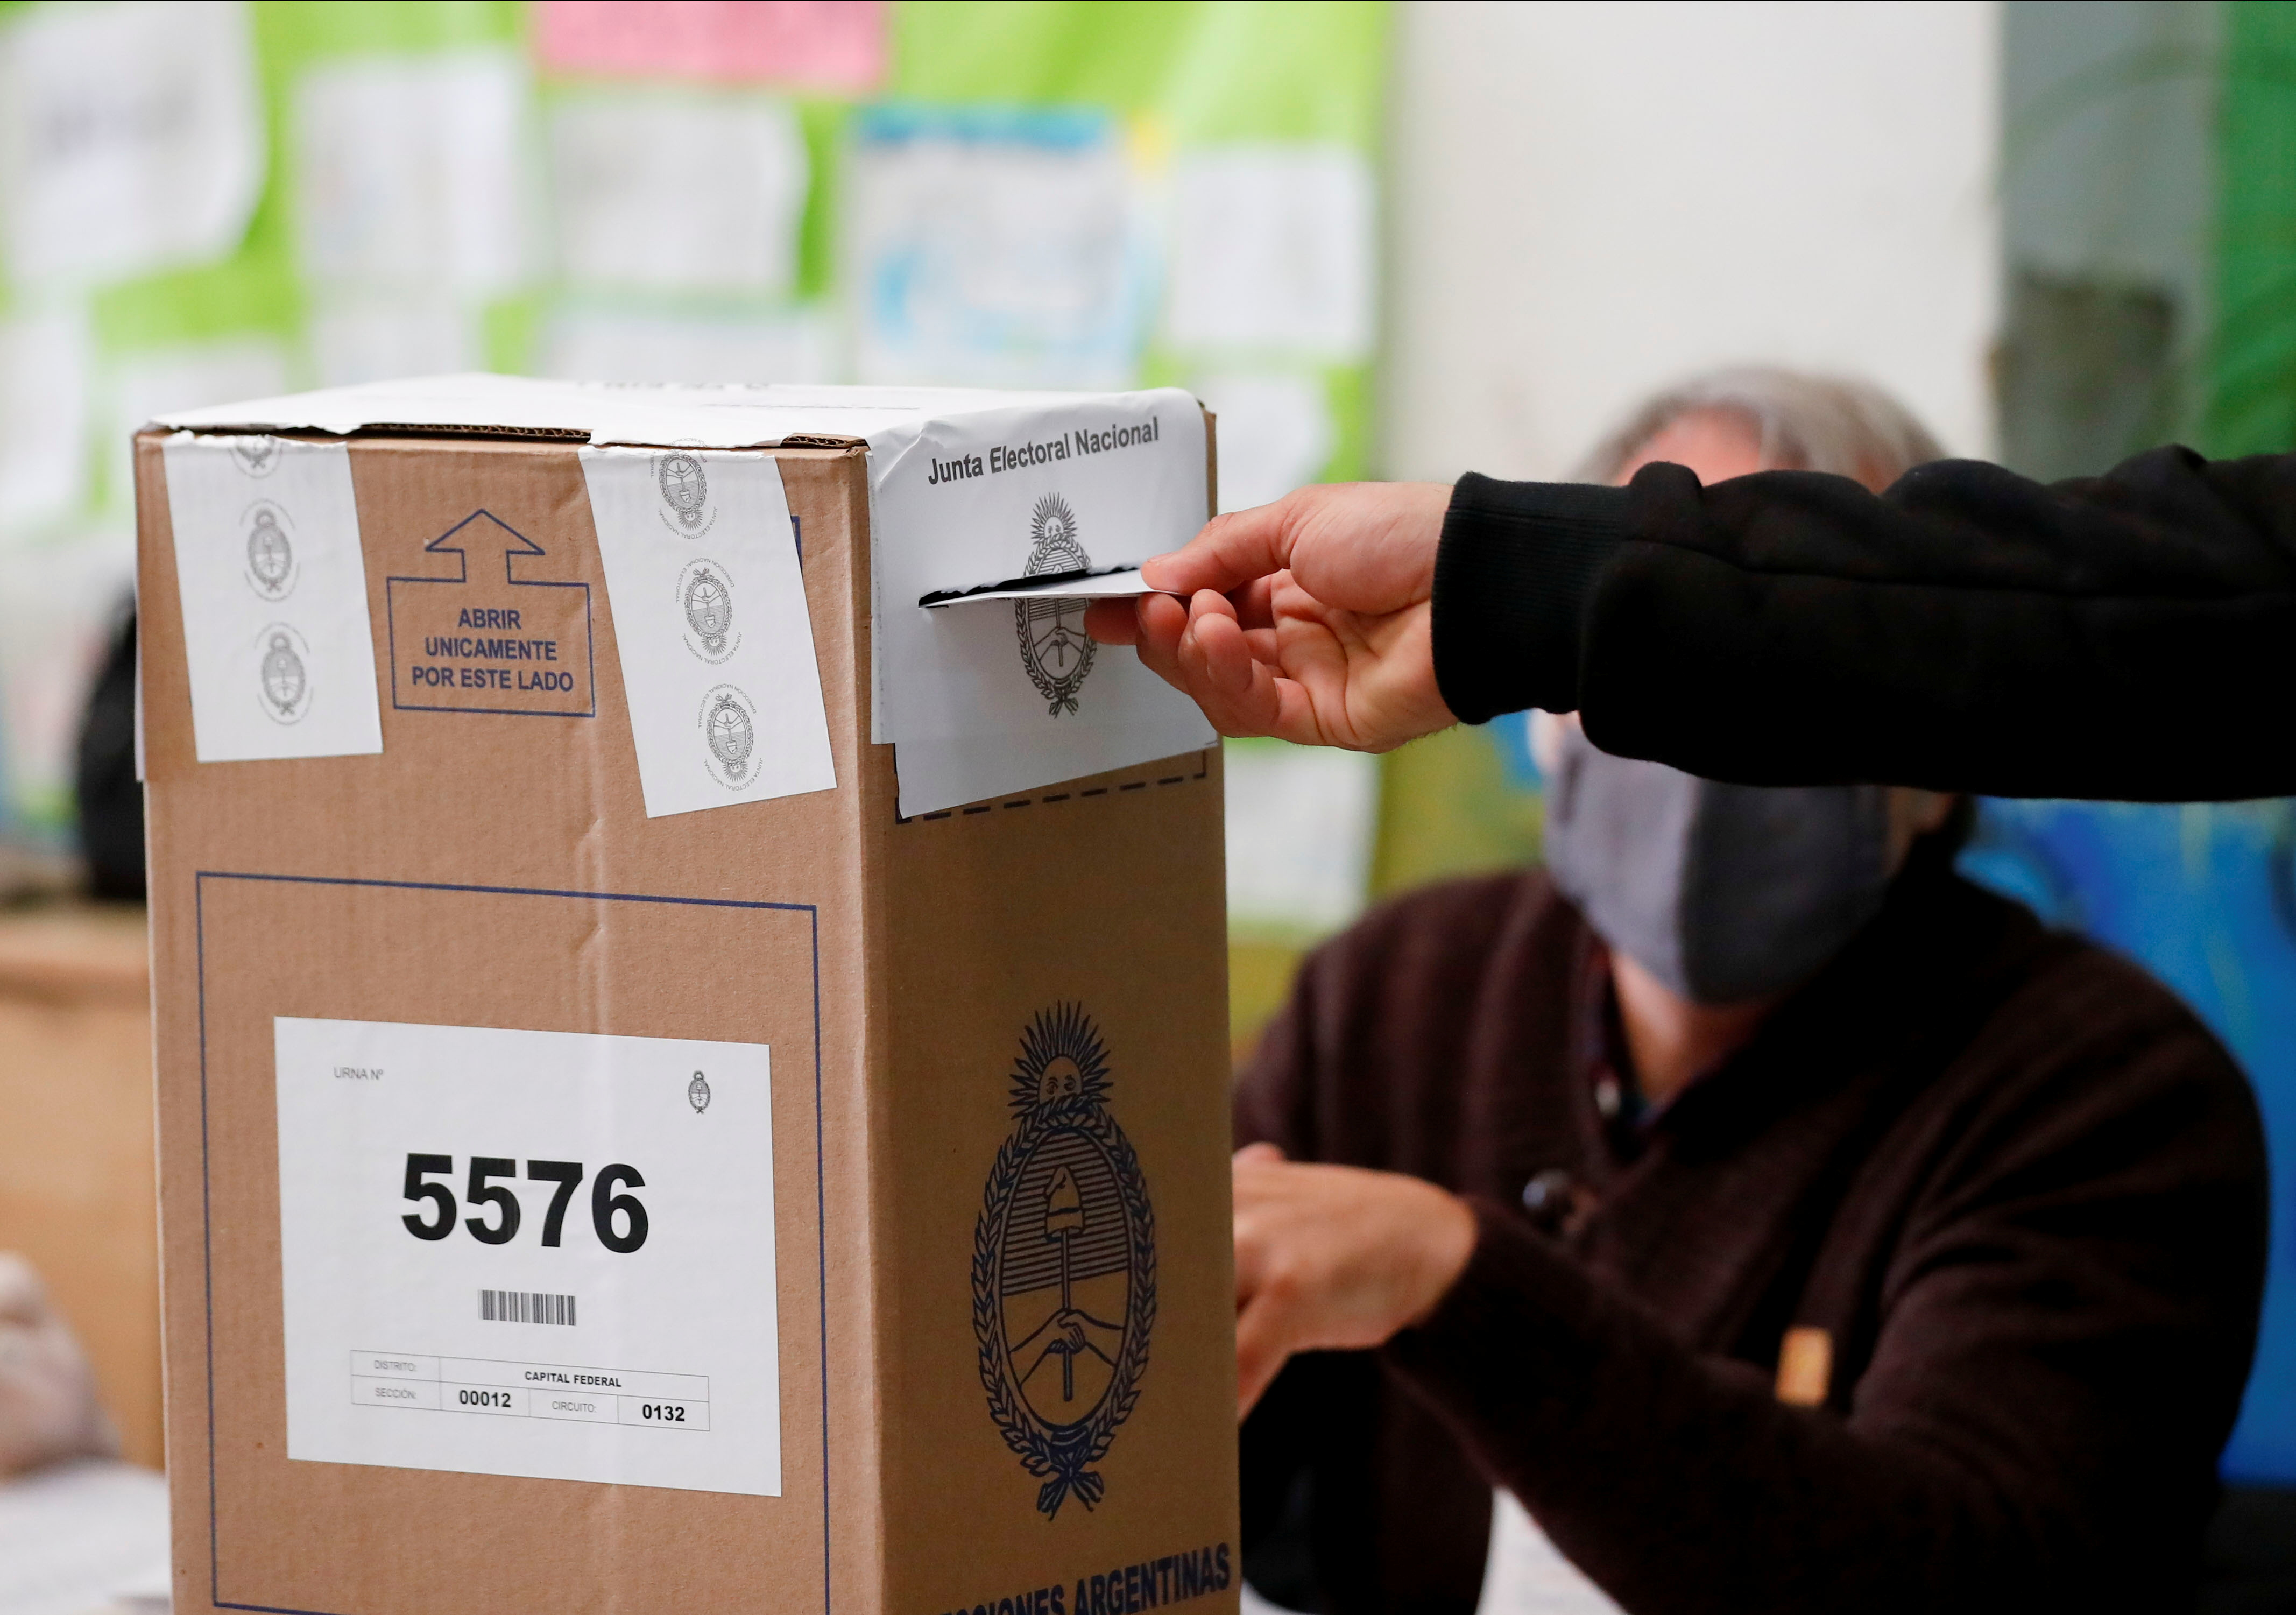 A man casts his vote in a polling station during primary legislative elections, in Buenos Aires, Argentina September 12, 2021. REUTERS/Agustin Marcarian